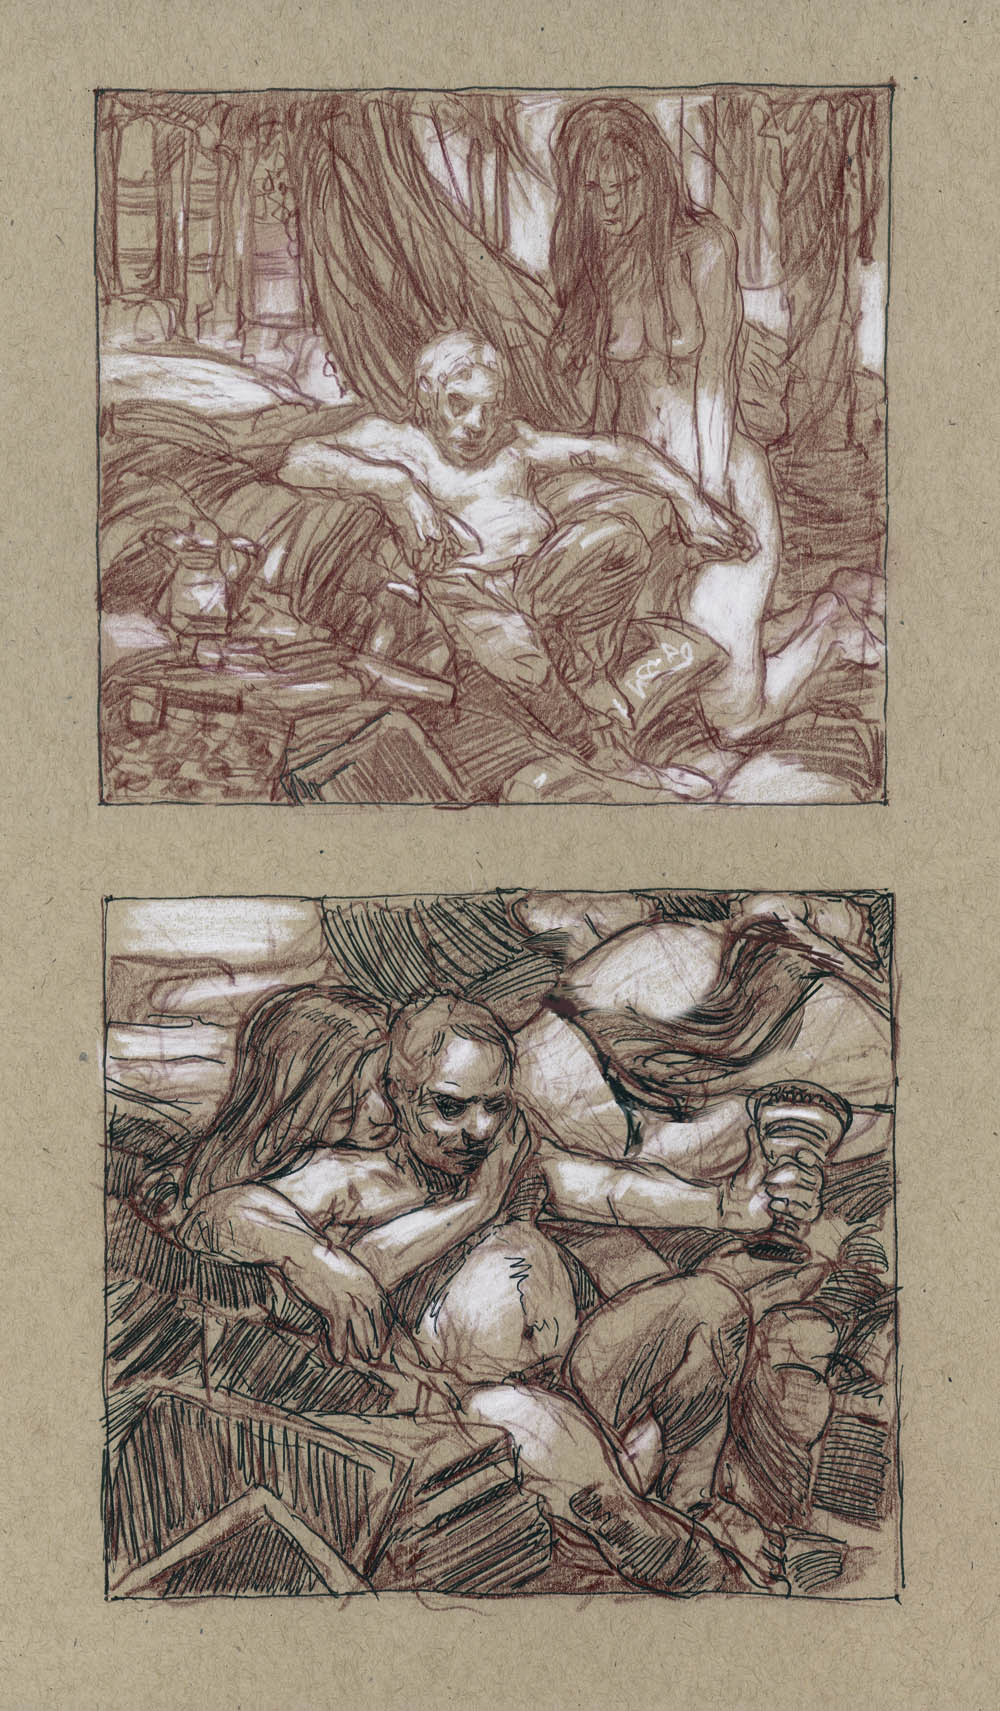 "The Hand - rough concepts 14"" x 11""  Watercolor and chalk on toned paper private collection"